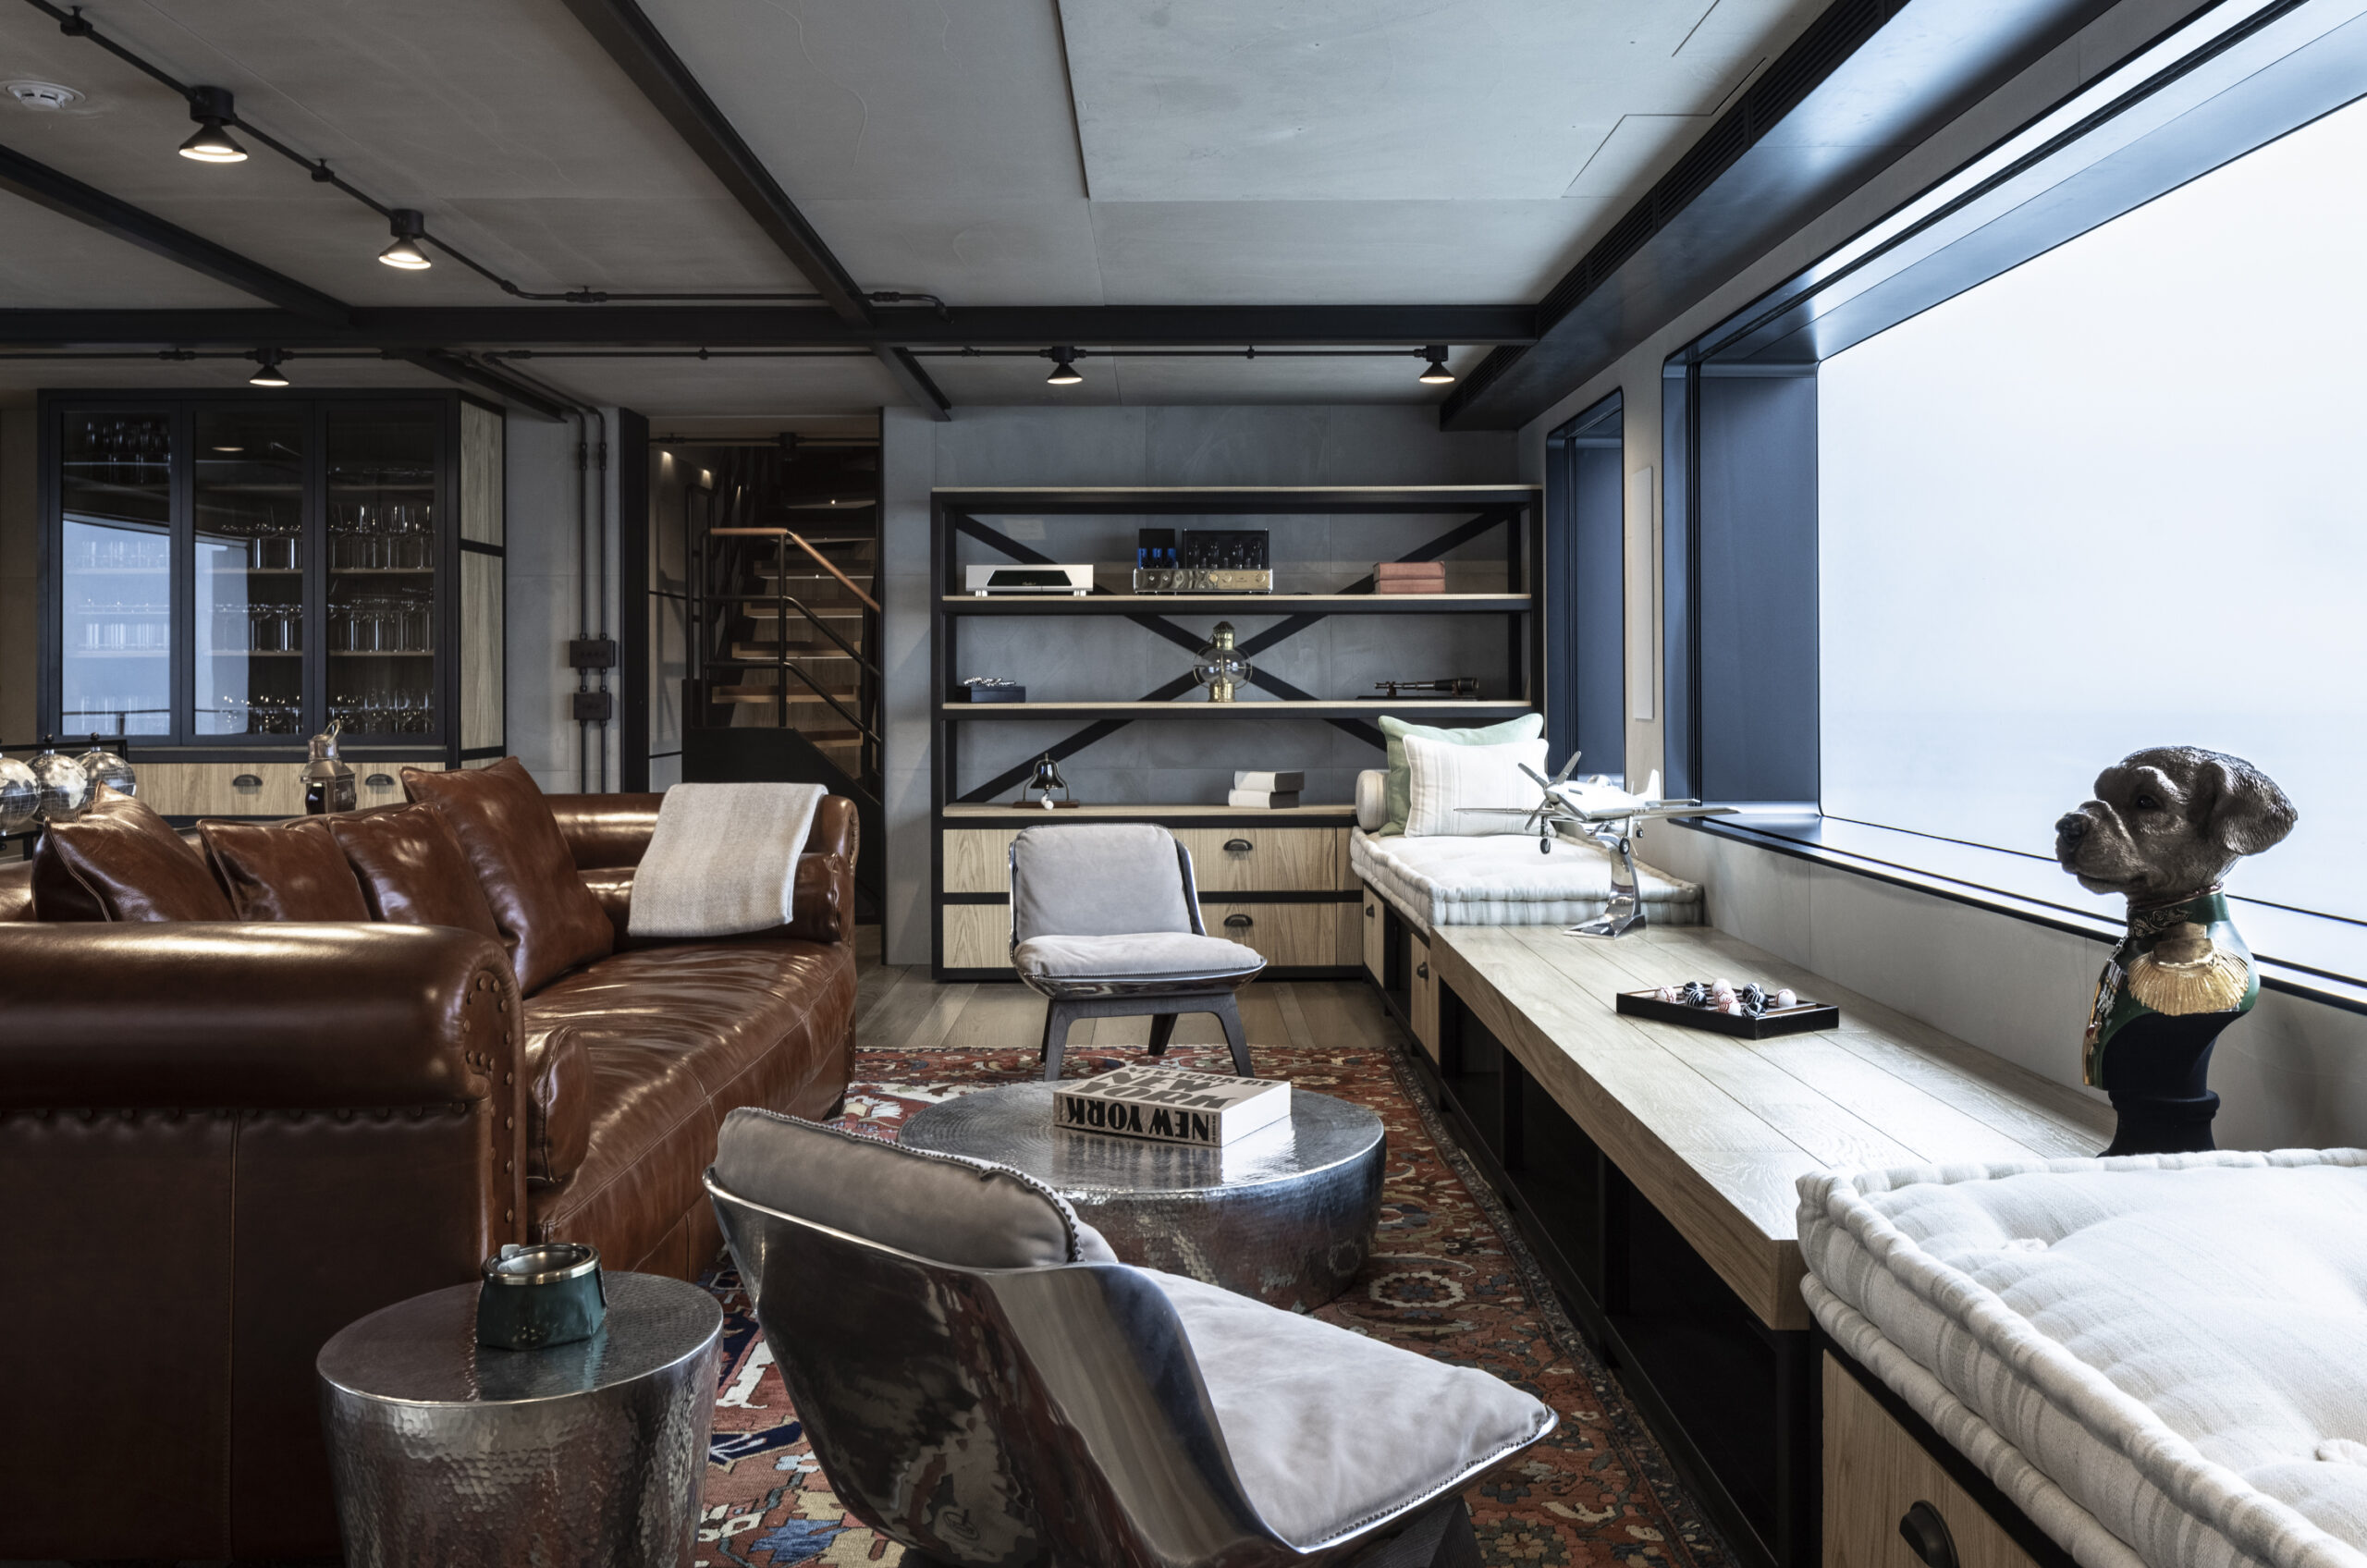 living are onboard the Flexplorer 130